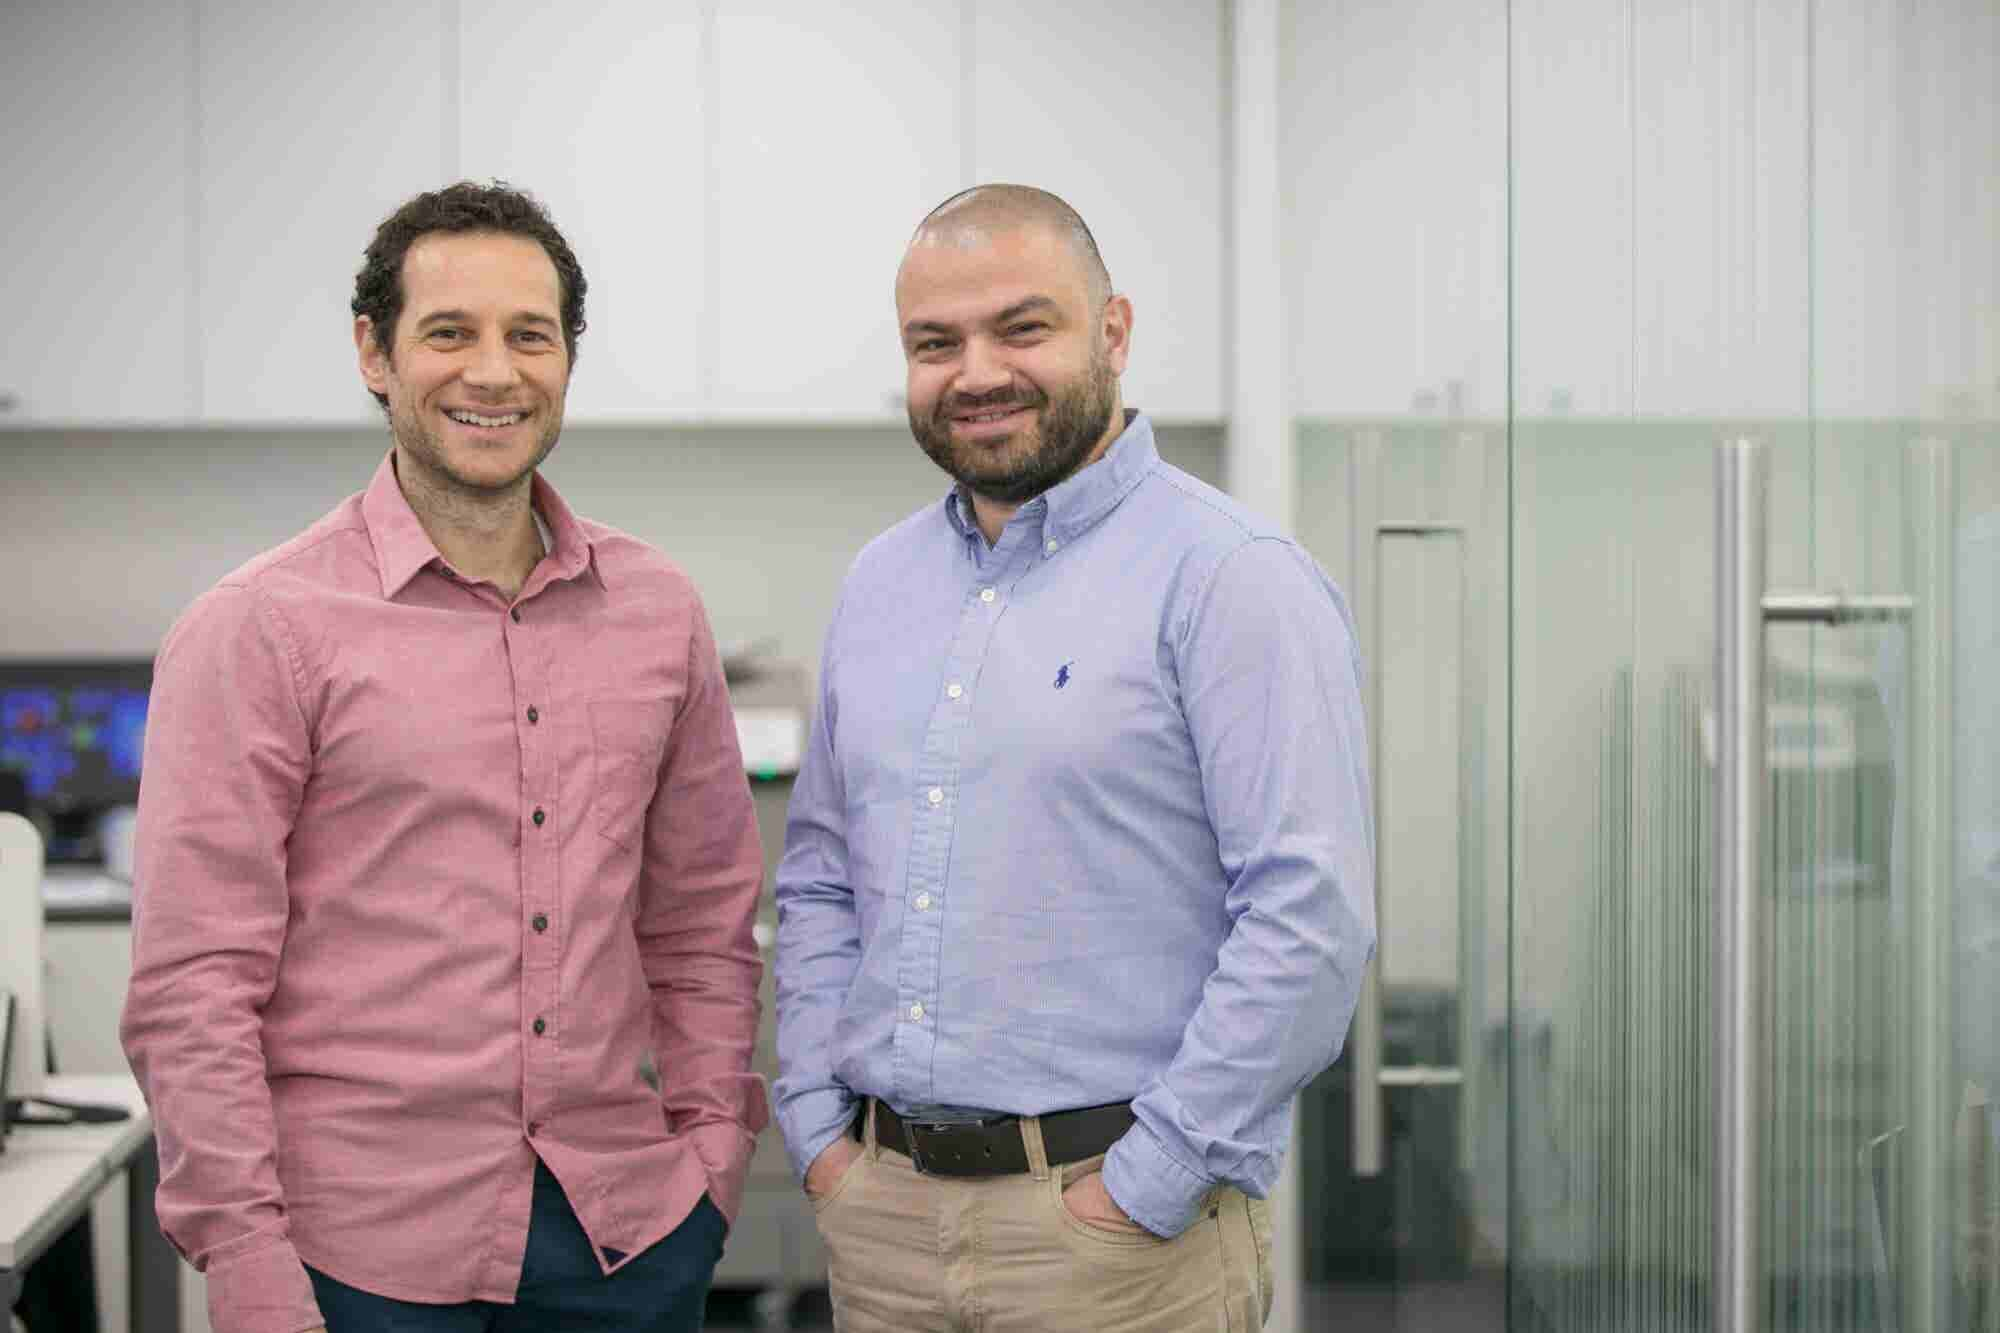 Insurtech Platform Aqeed.com Launches In The UAE With US$18 Million Investment